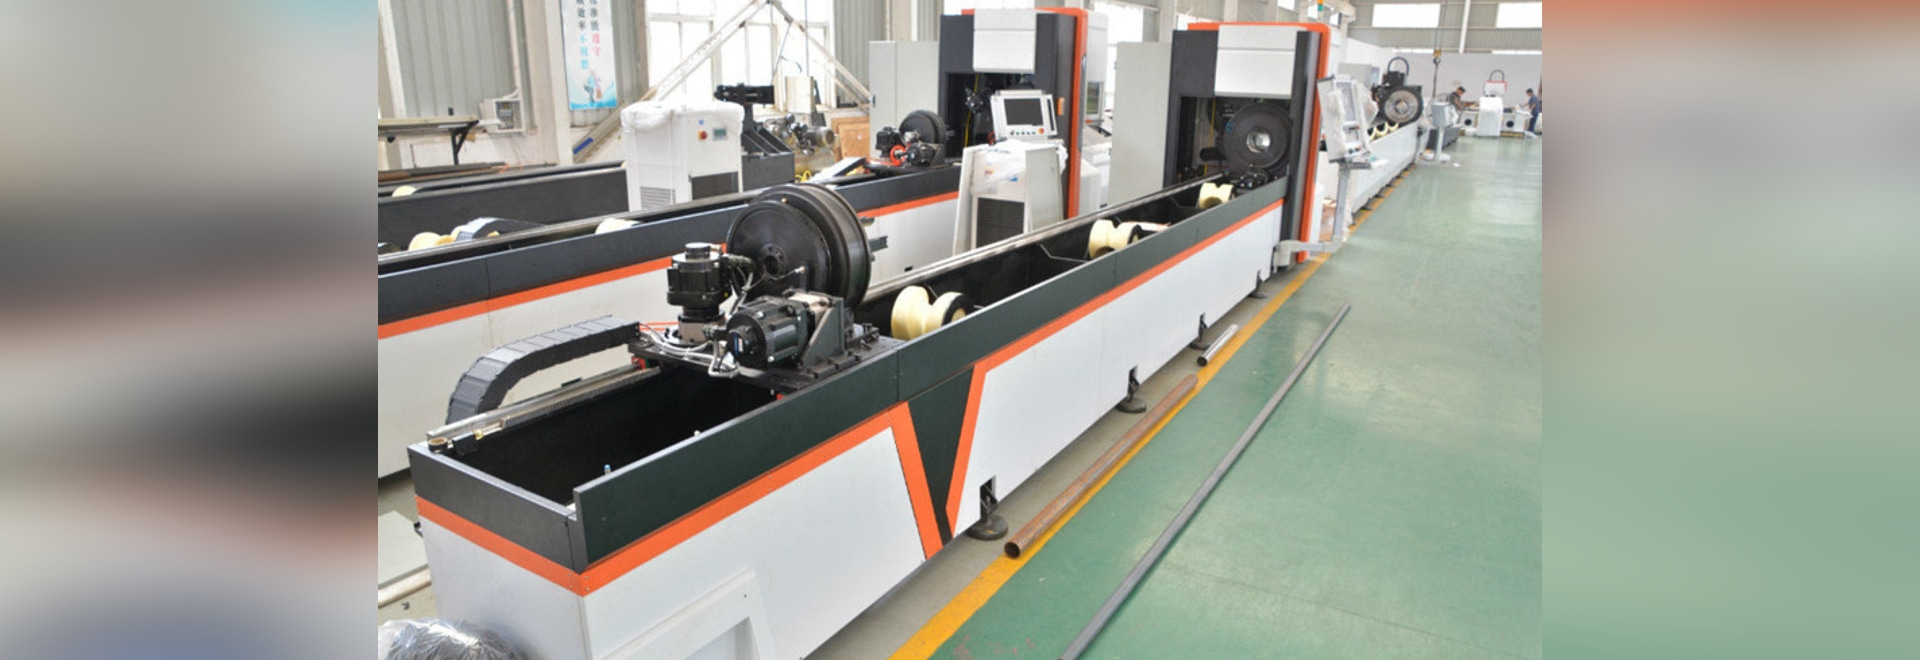 Mass production of automatic bundle loader fiber laser metal pipe / tube cutting machine by Golden Vtop Laser Fiber laser cutting machine